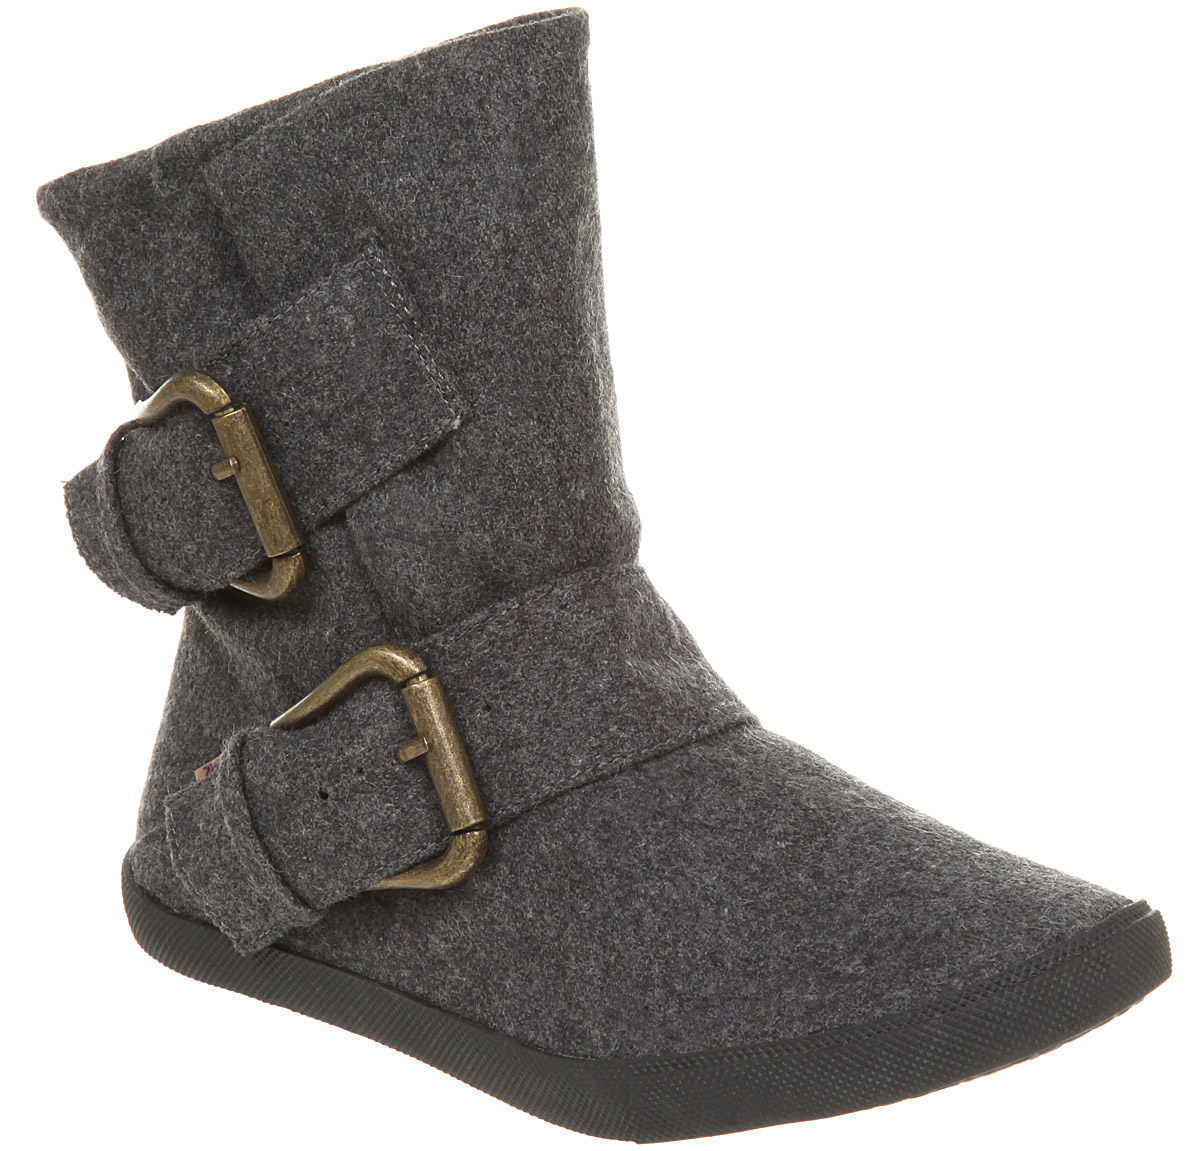 Womens-Blowfish-Hold-Em-Pirate-Ankle-Two-Tone-Grey-Buckle-Boots